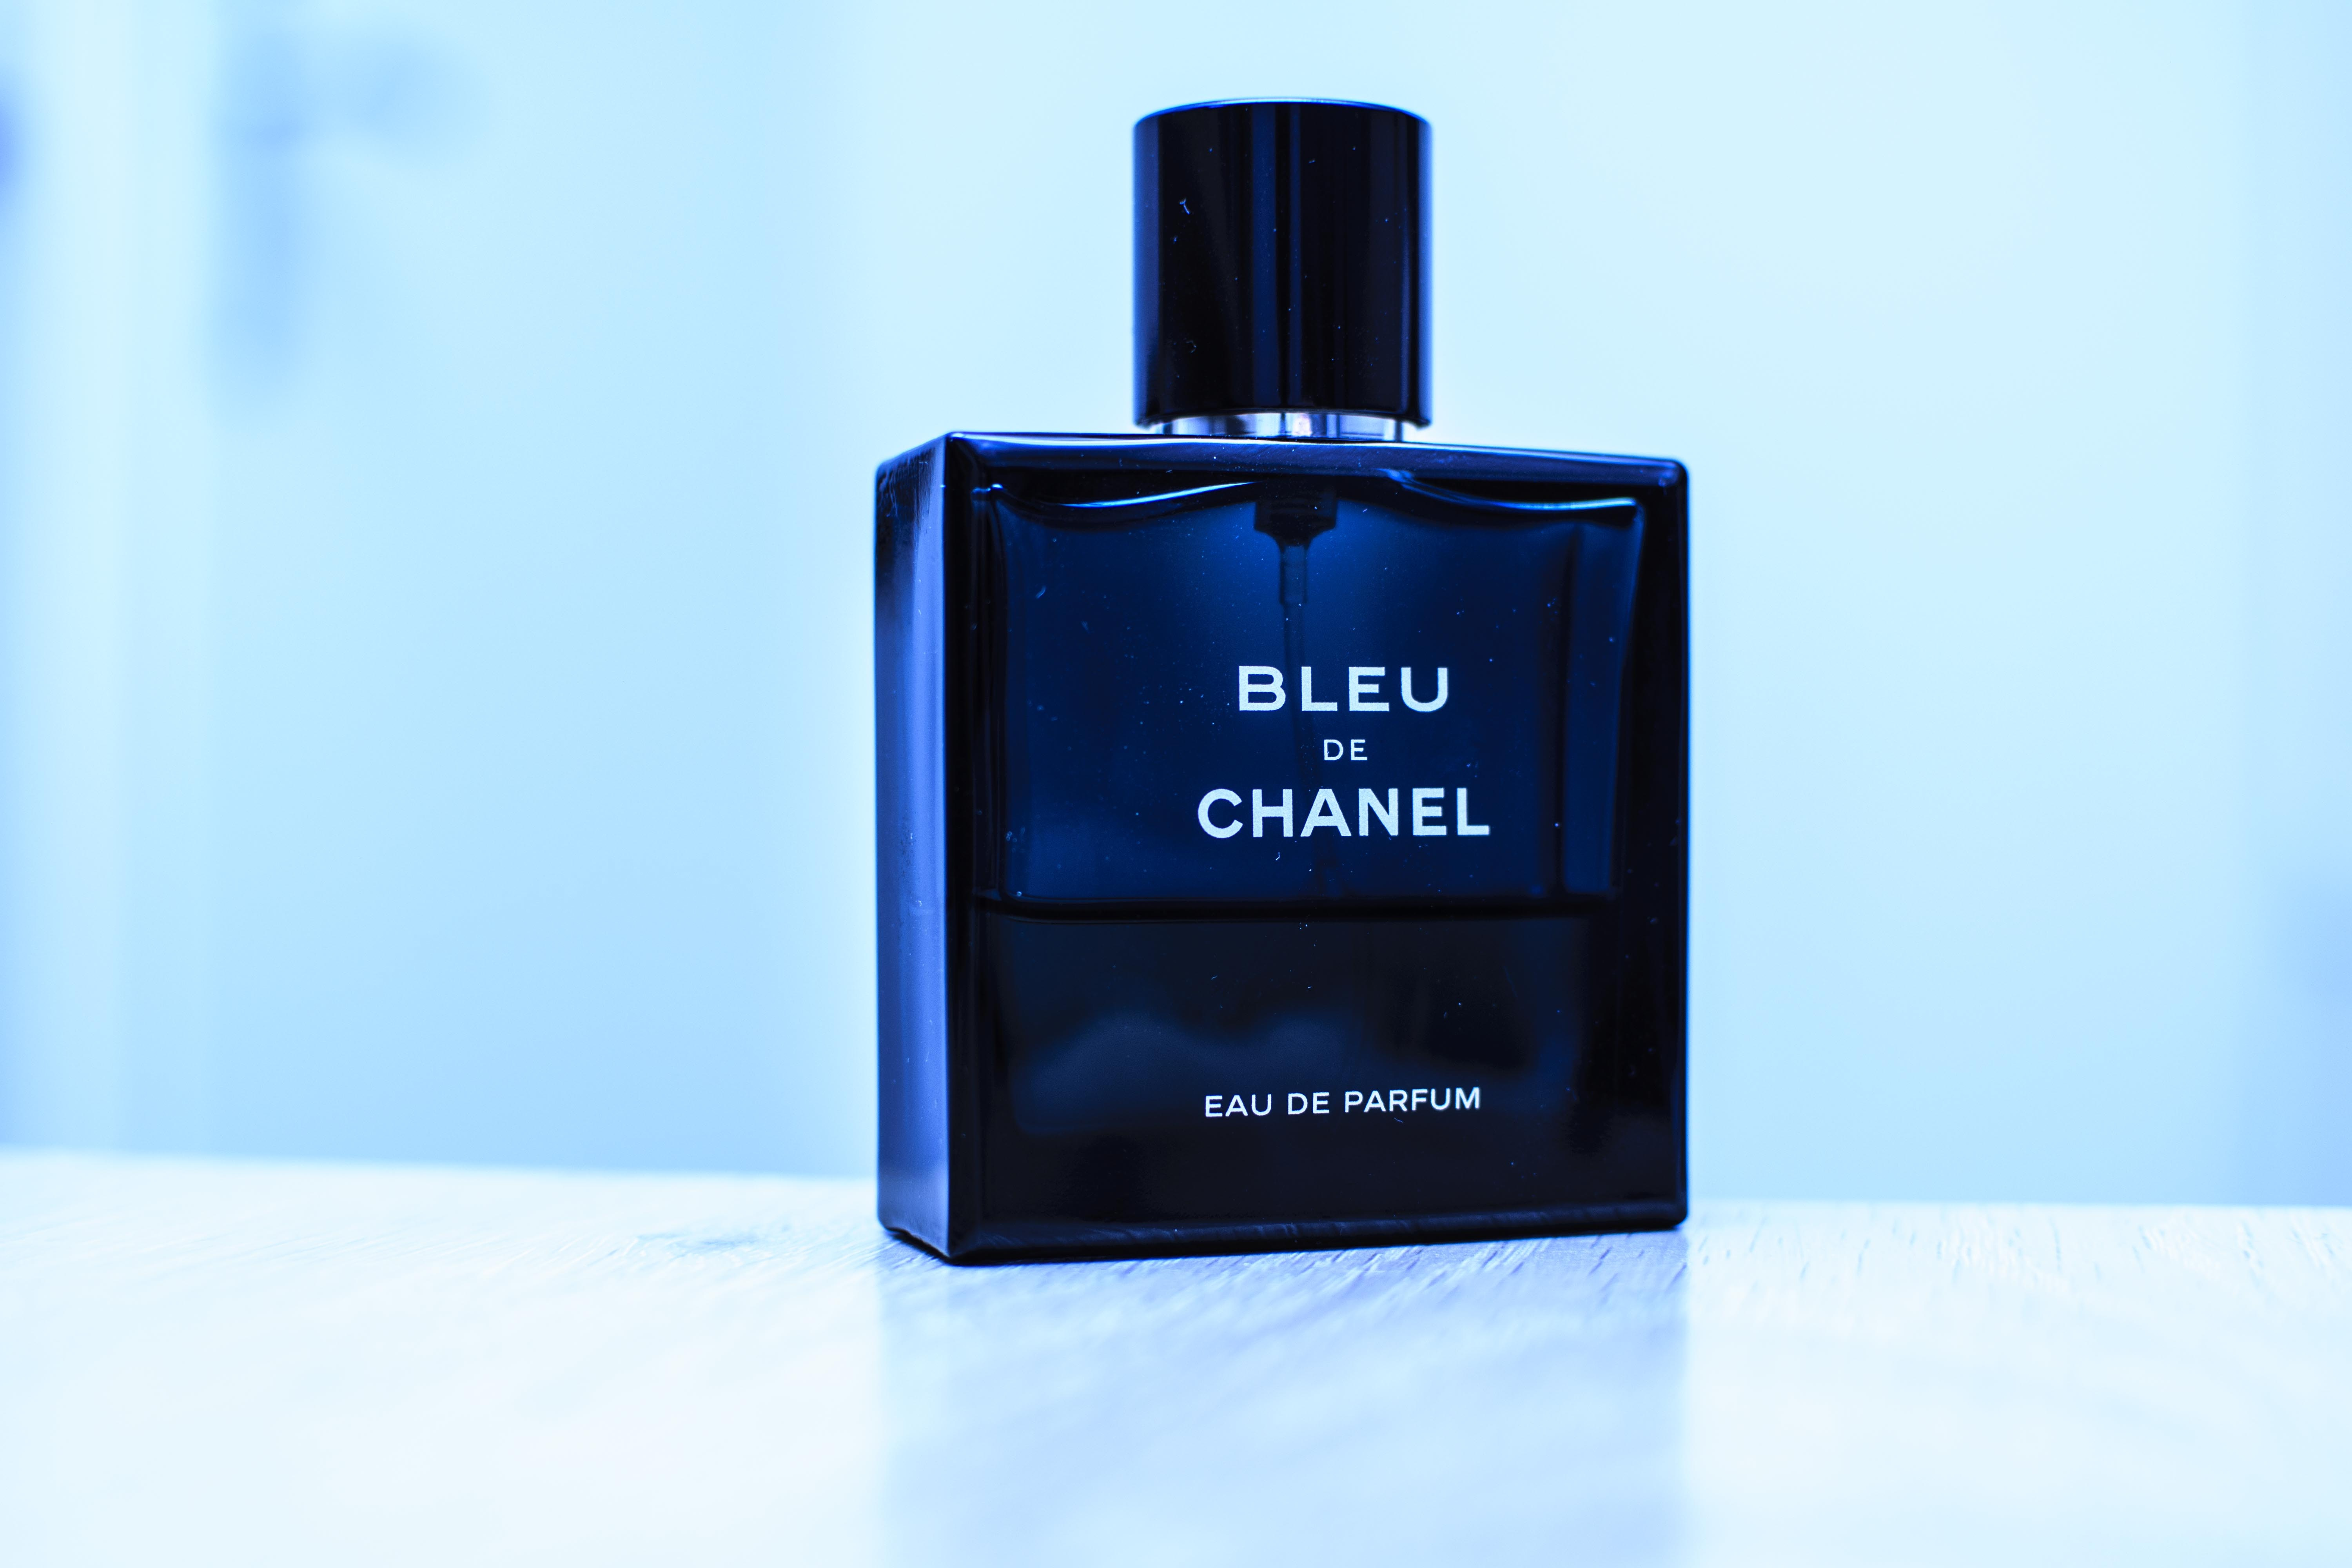 Bleu De Chanel perfume bottle